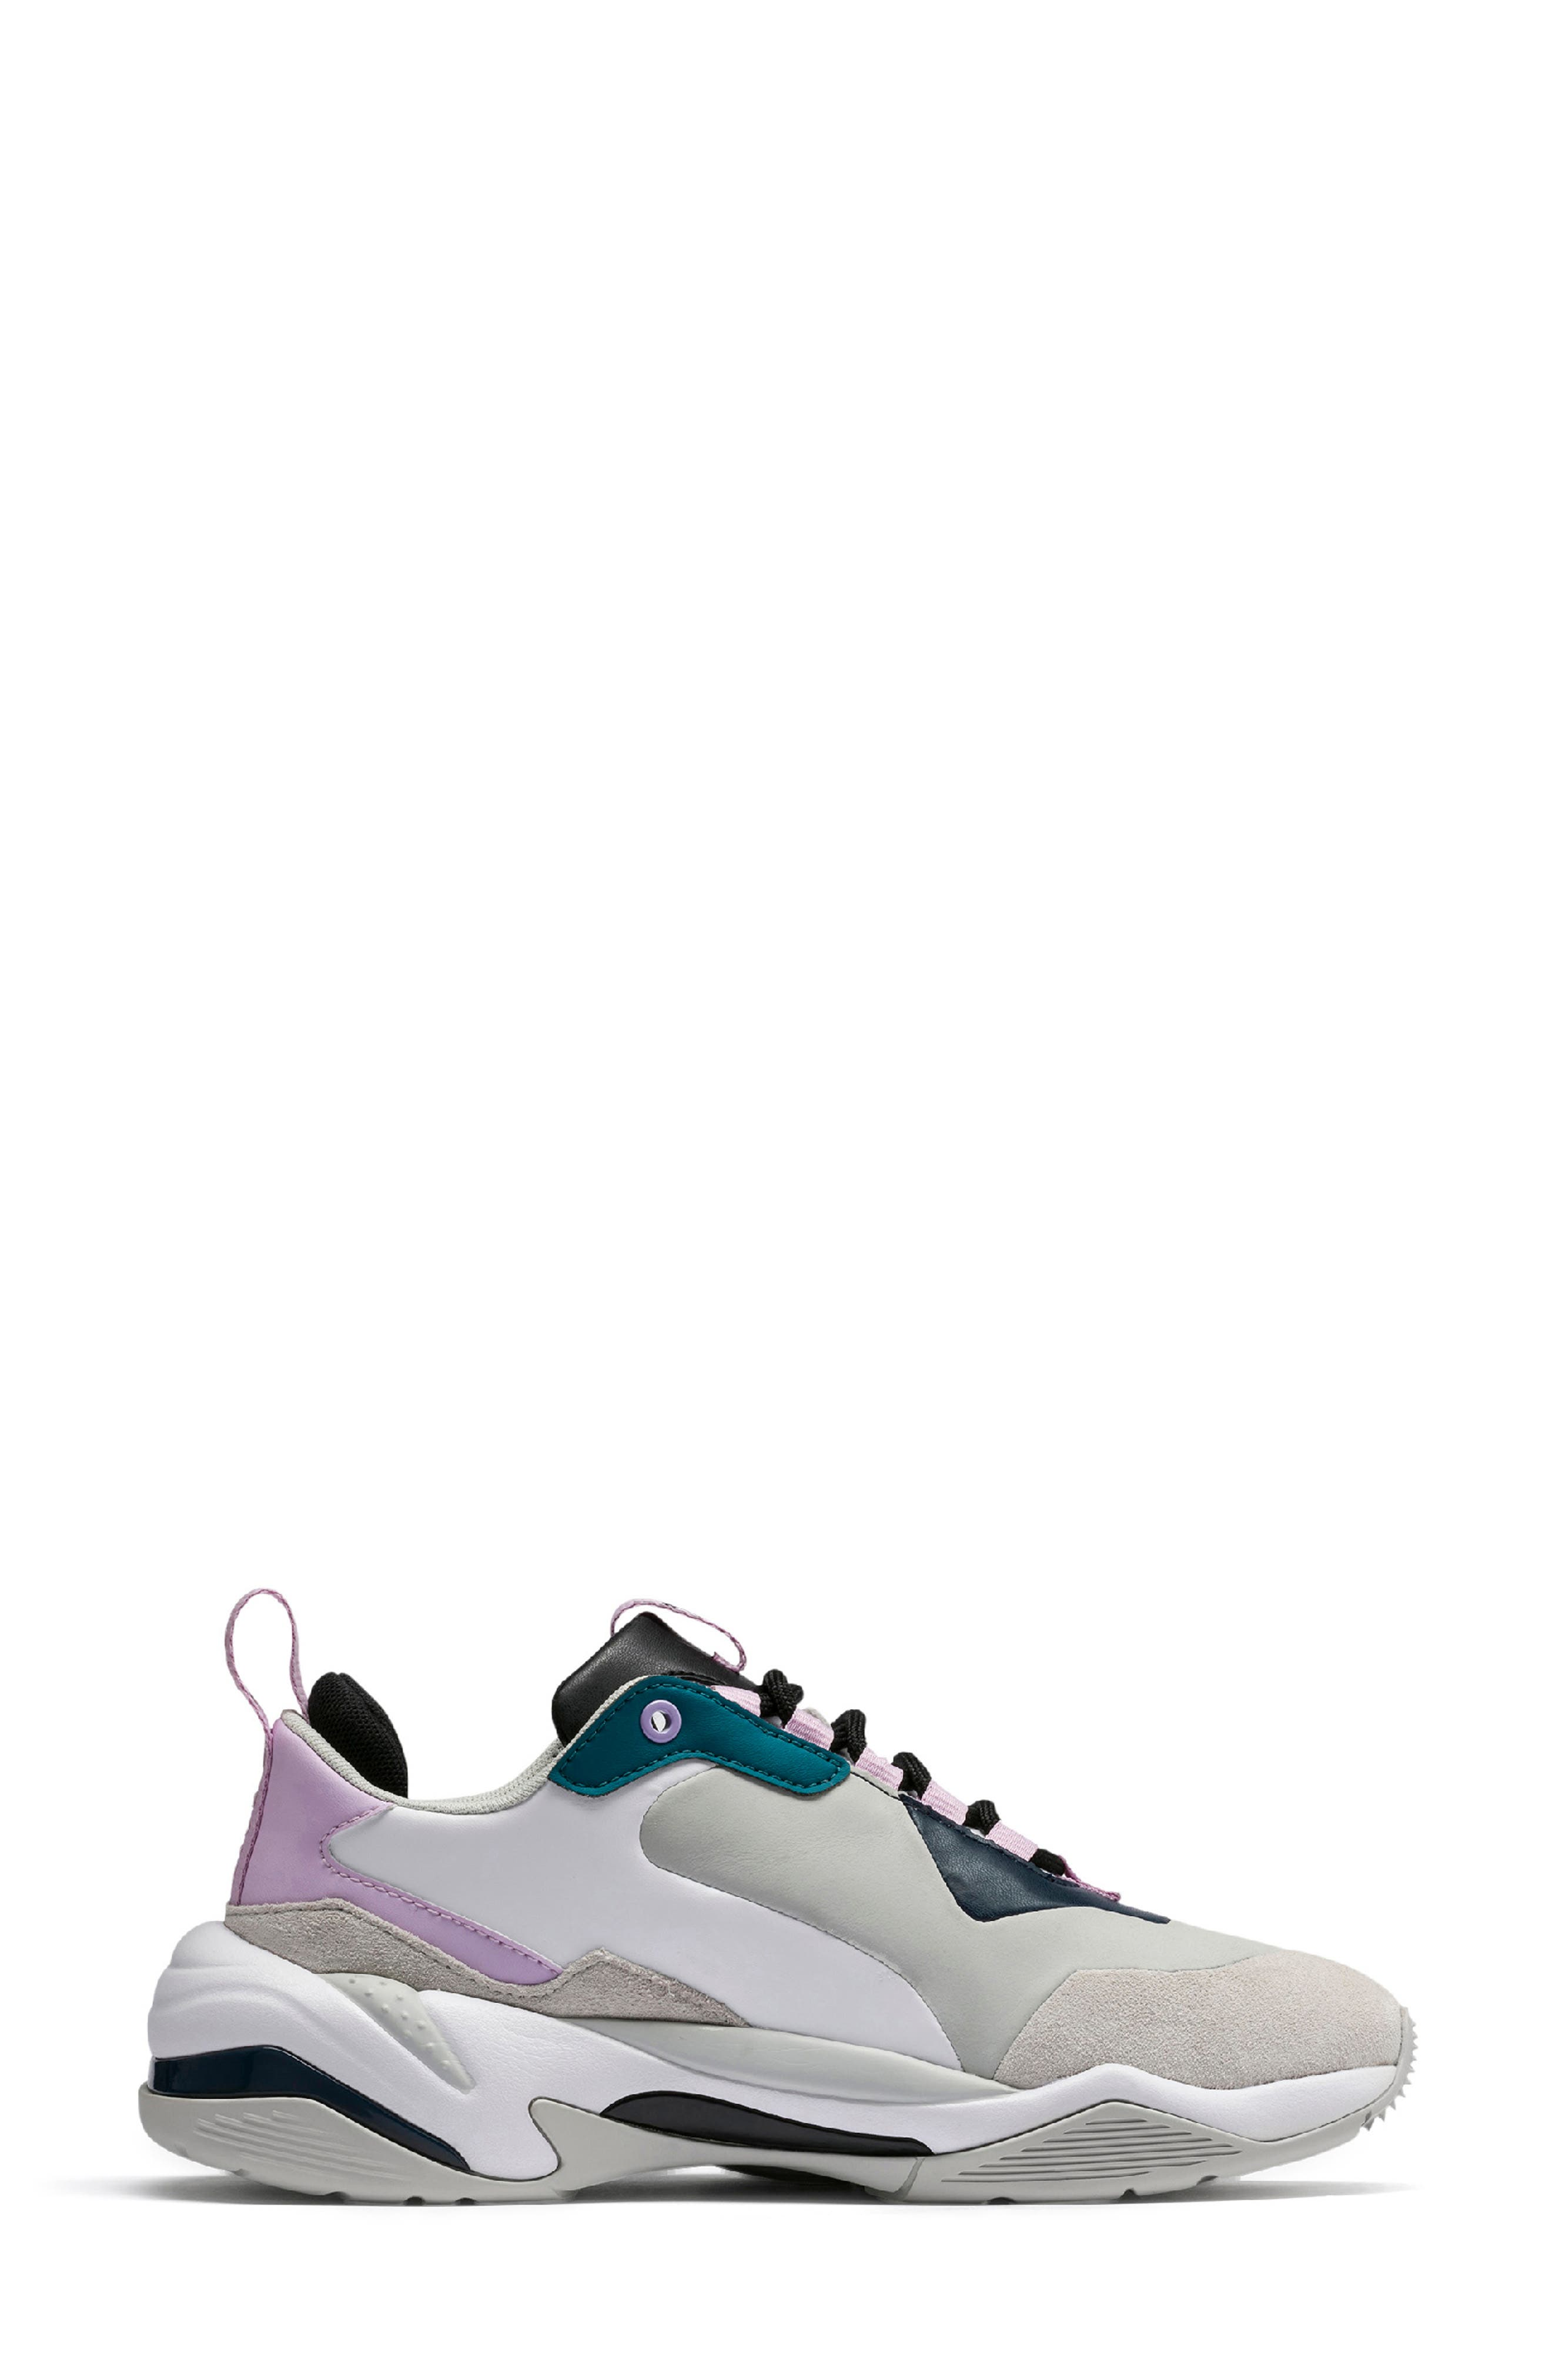 PUMA, Thunder Electric Sneaker, Alternate thumbnail 3, color, DEEP LAGOON/ ORCHID BLOOM